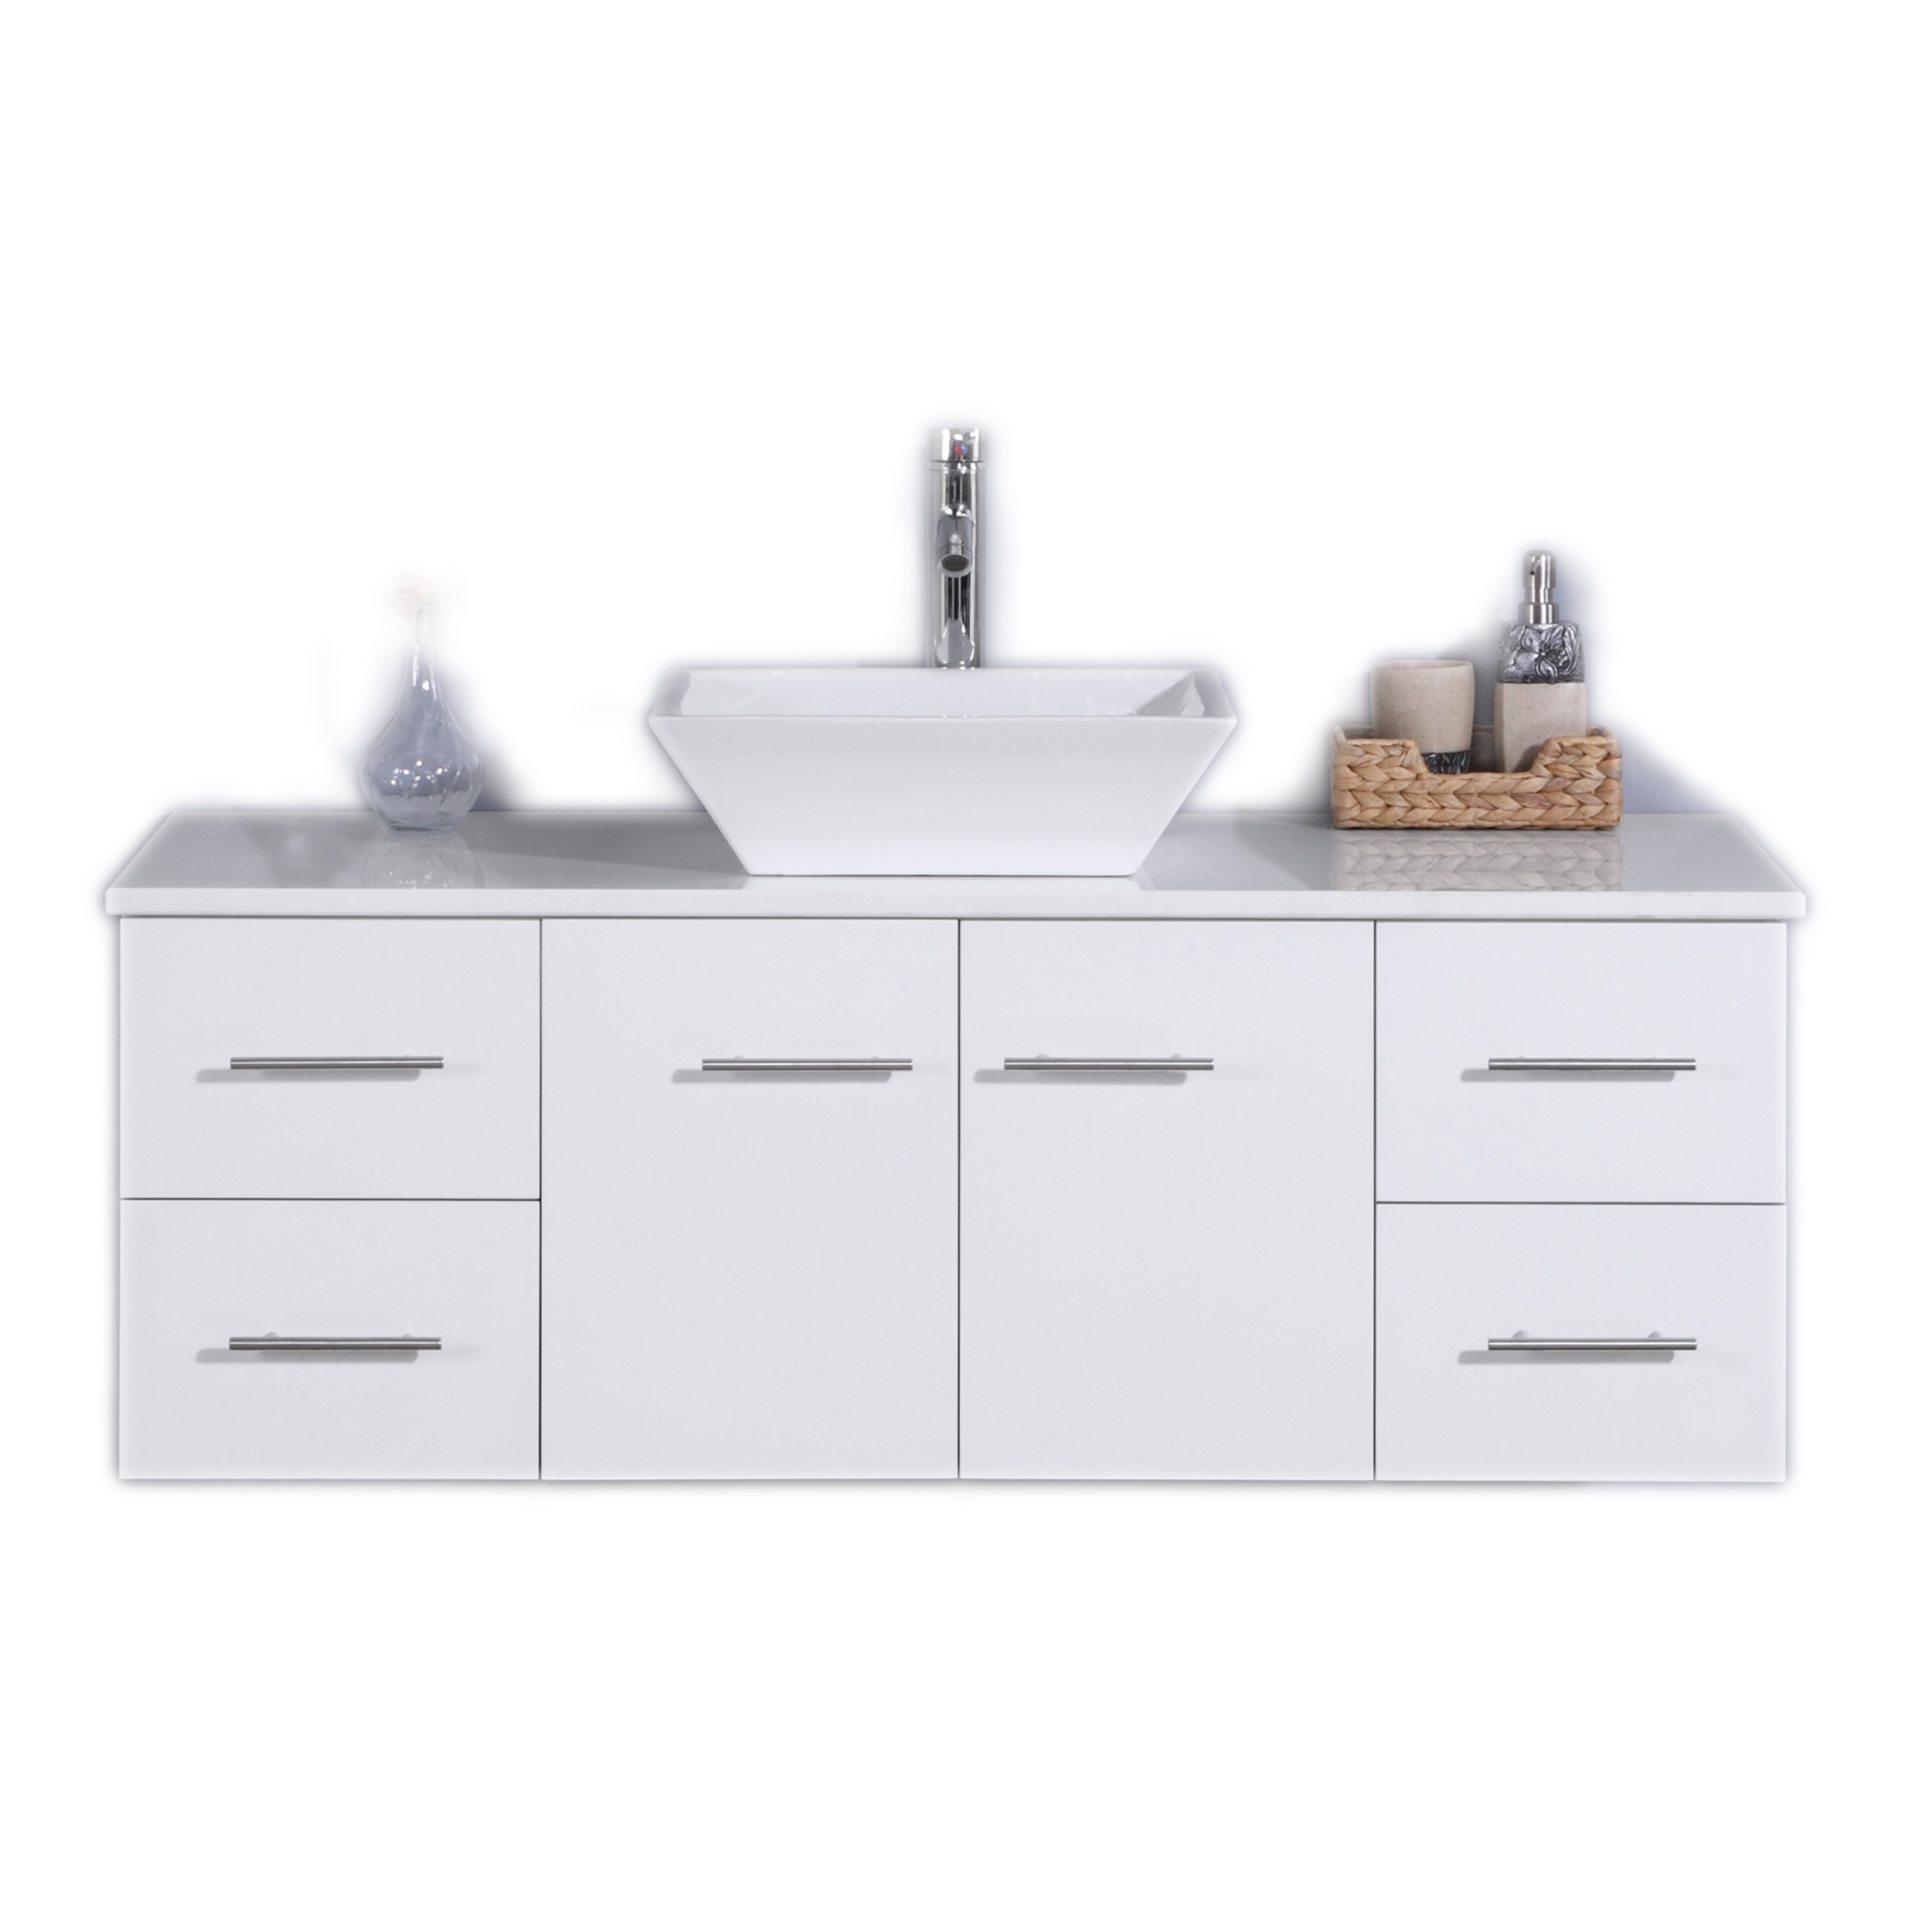 Bathroom Vanity Top With Sink Totti Wave 48 Inch White Modern Bathroom Vanity With Counter Top And Sink